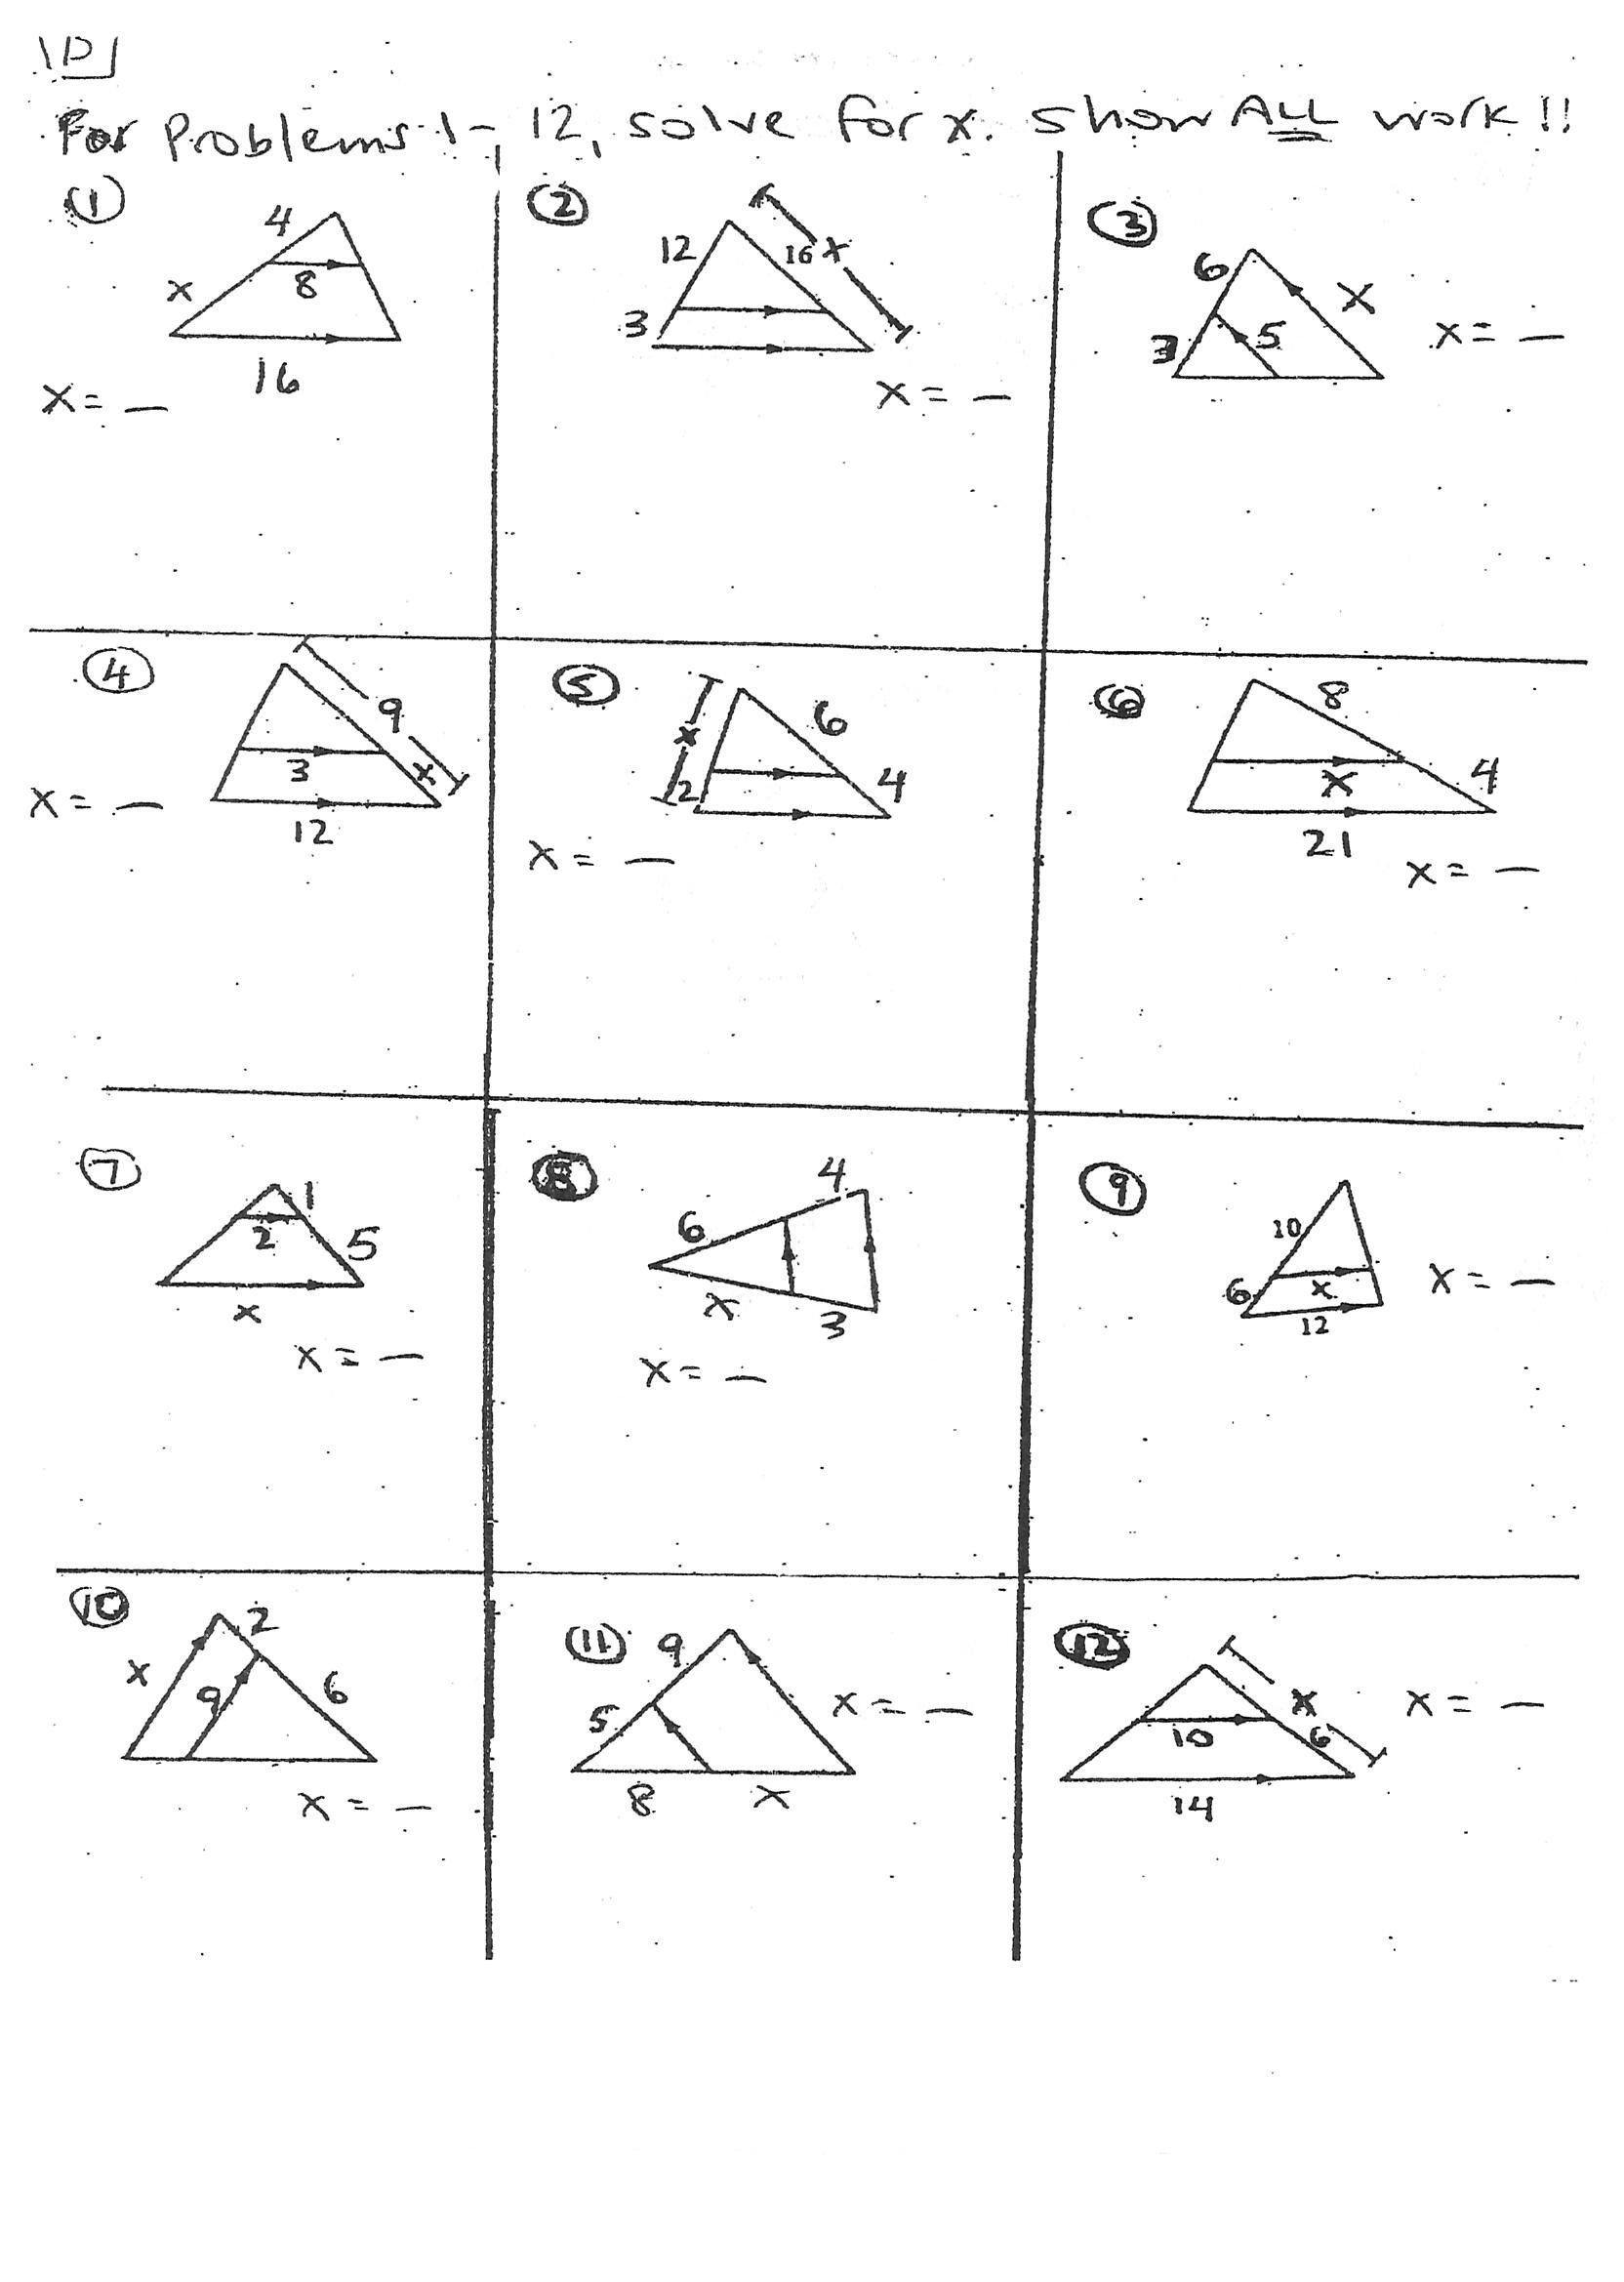 Congruent Triangles Worksheet With Answers Image Result